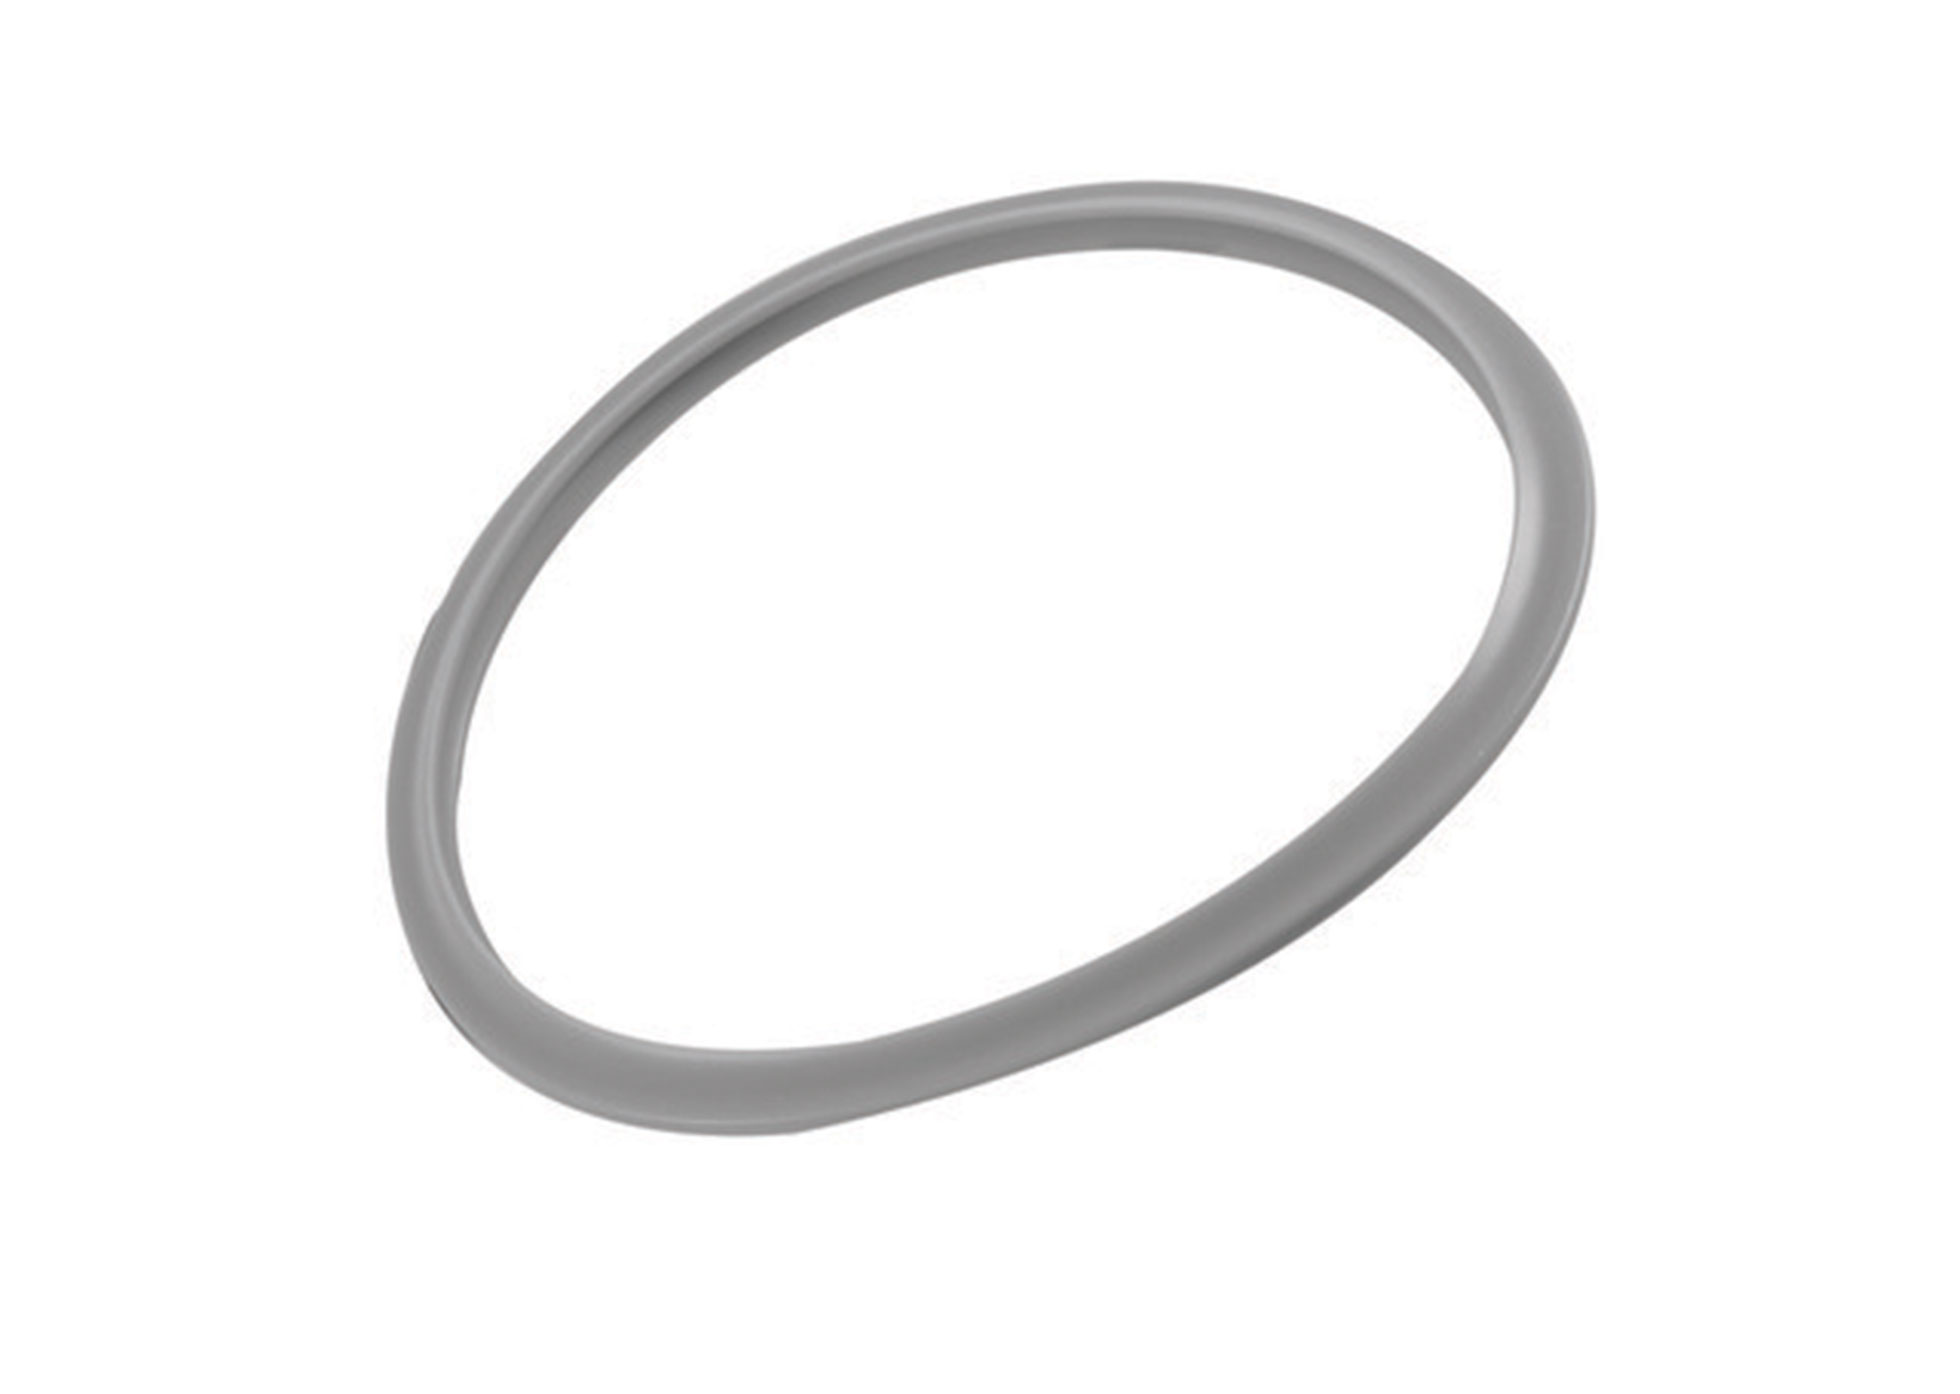 Podiaclave Accessories - Grey Gasket